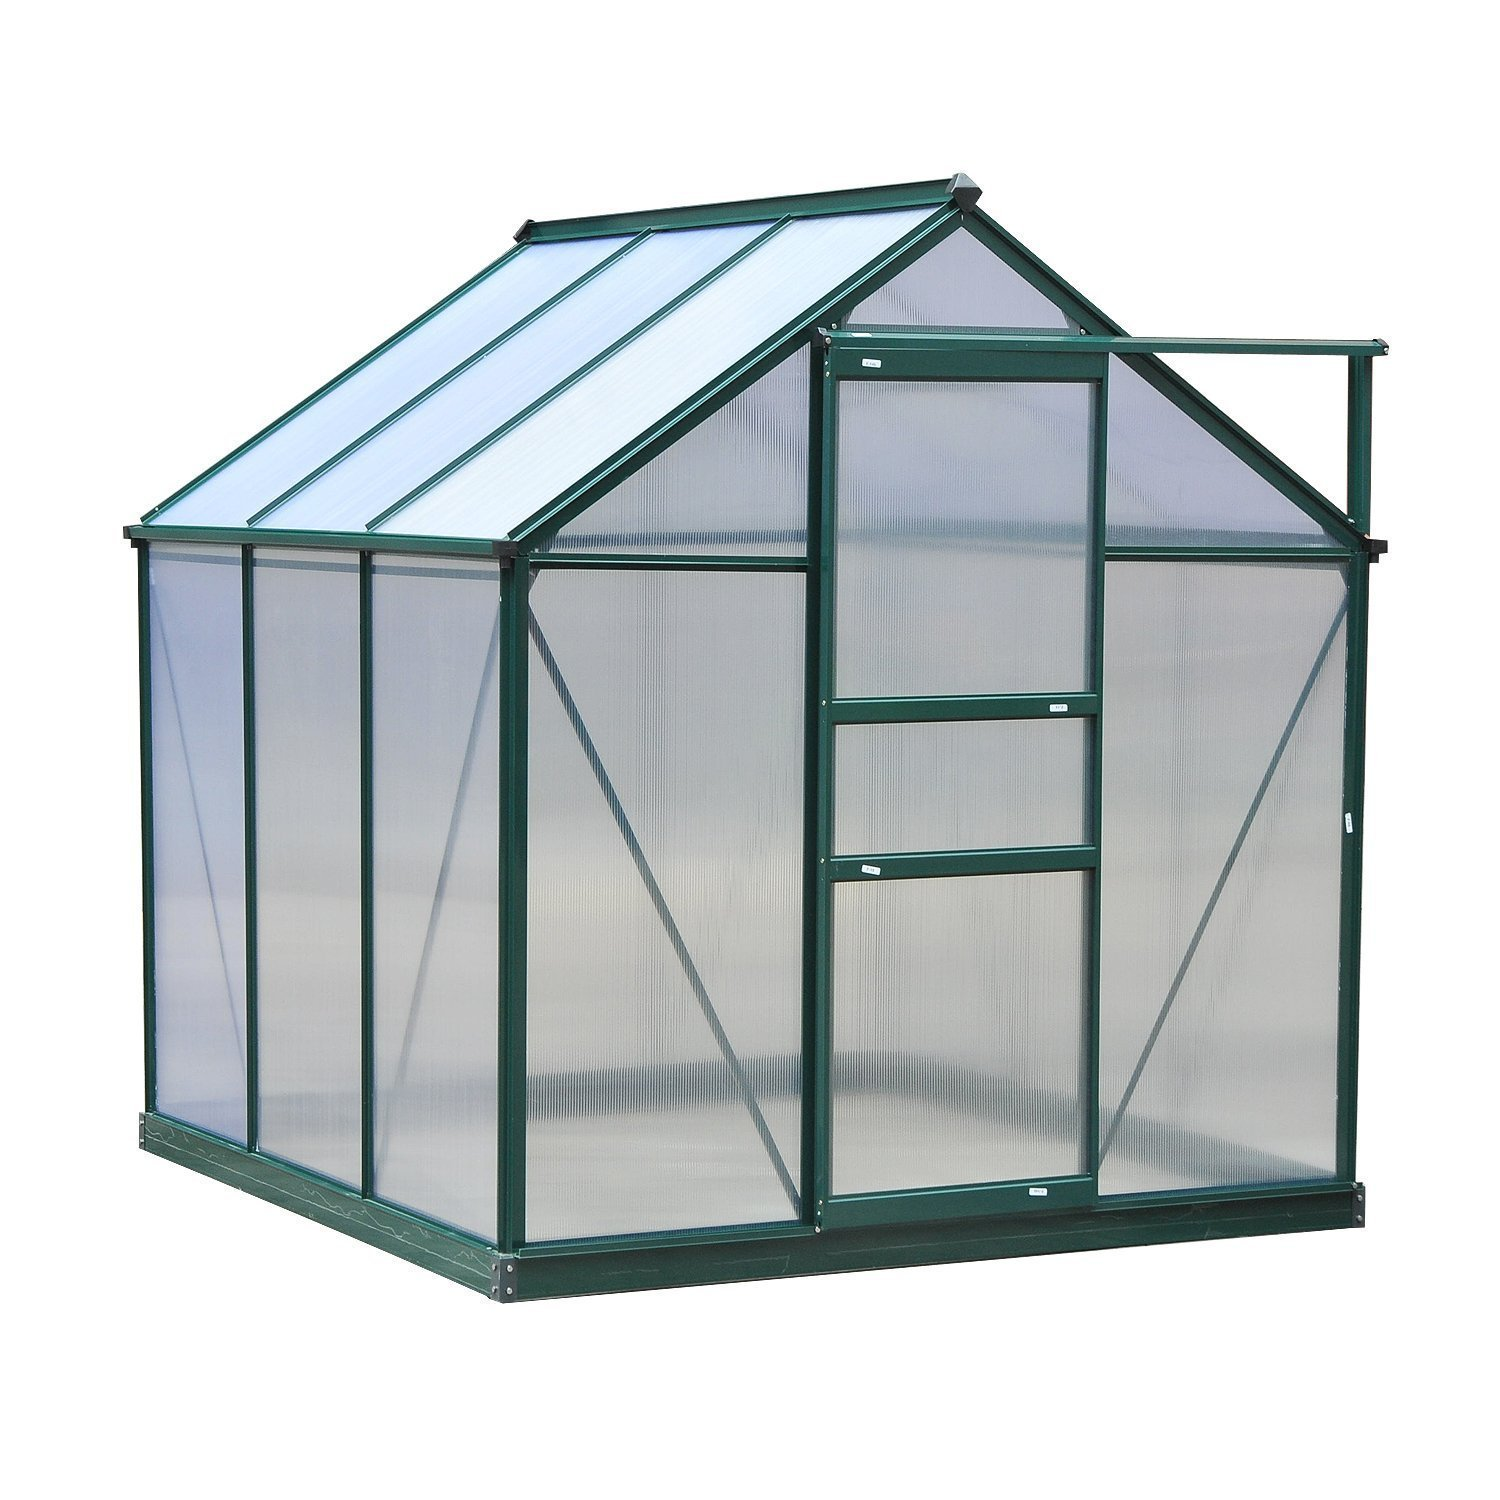 Outsunny 6'L x 6'W x 7'H Polycarbonate Portable Walk-In Garden Greenhouse by Outsunny